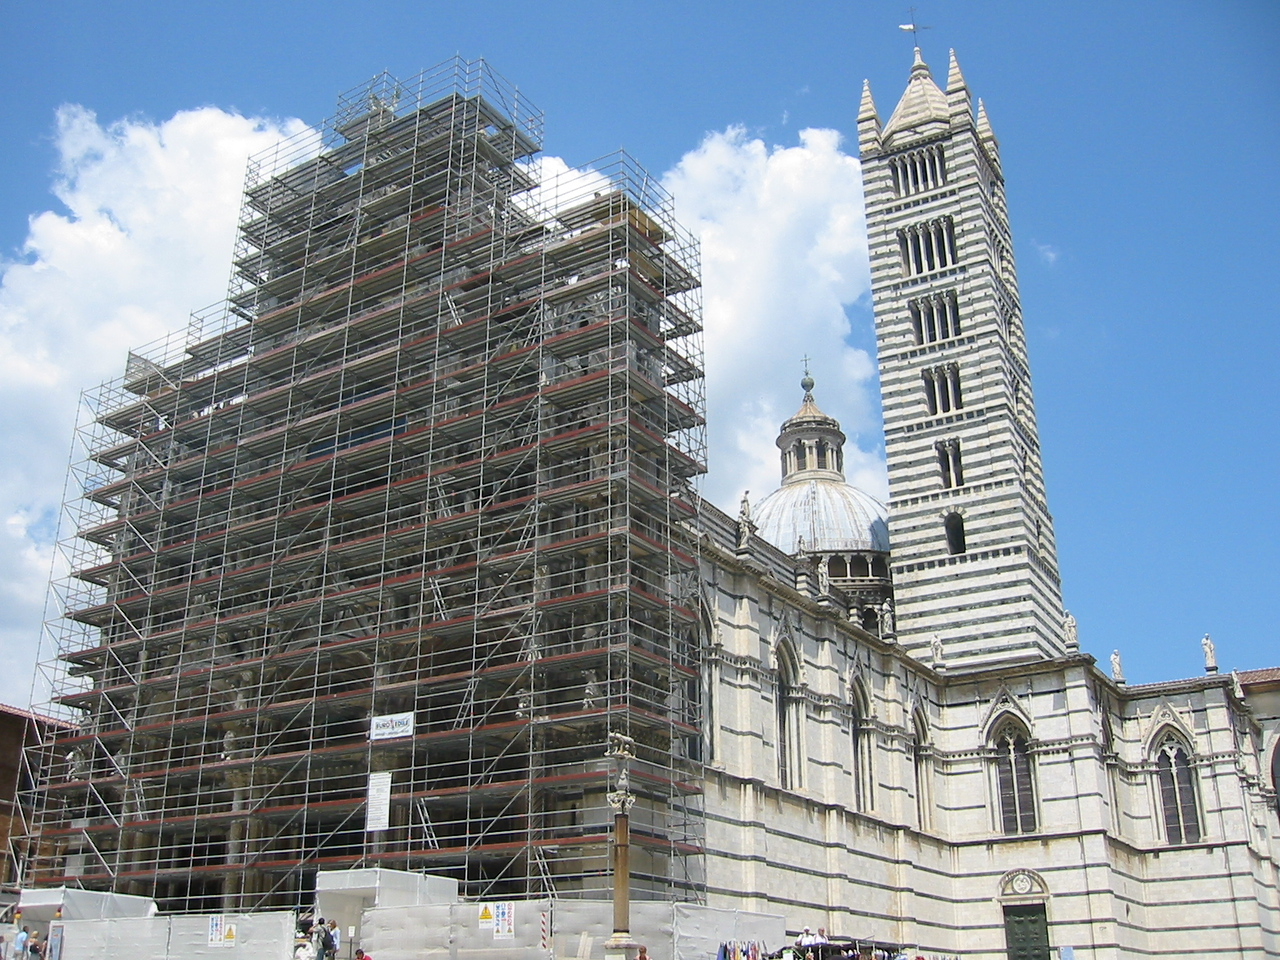 Duomo, complete with scaffolding